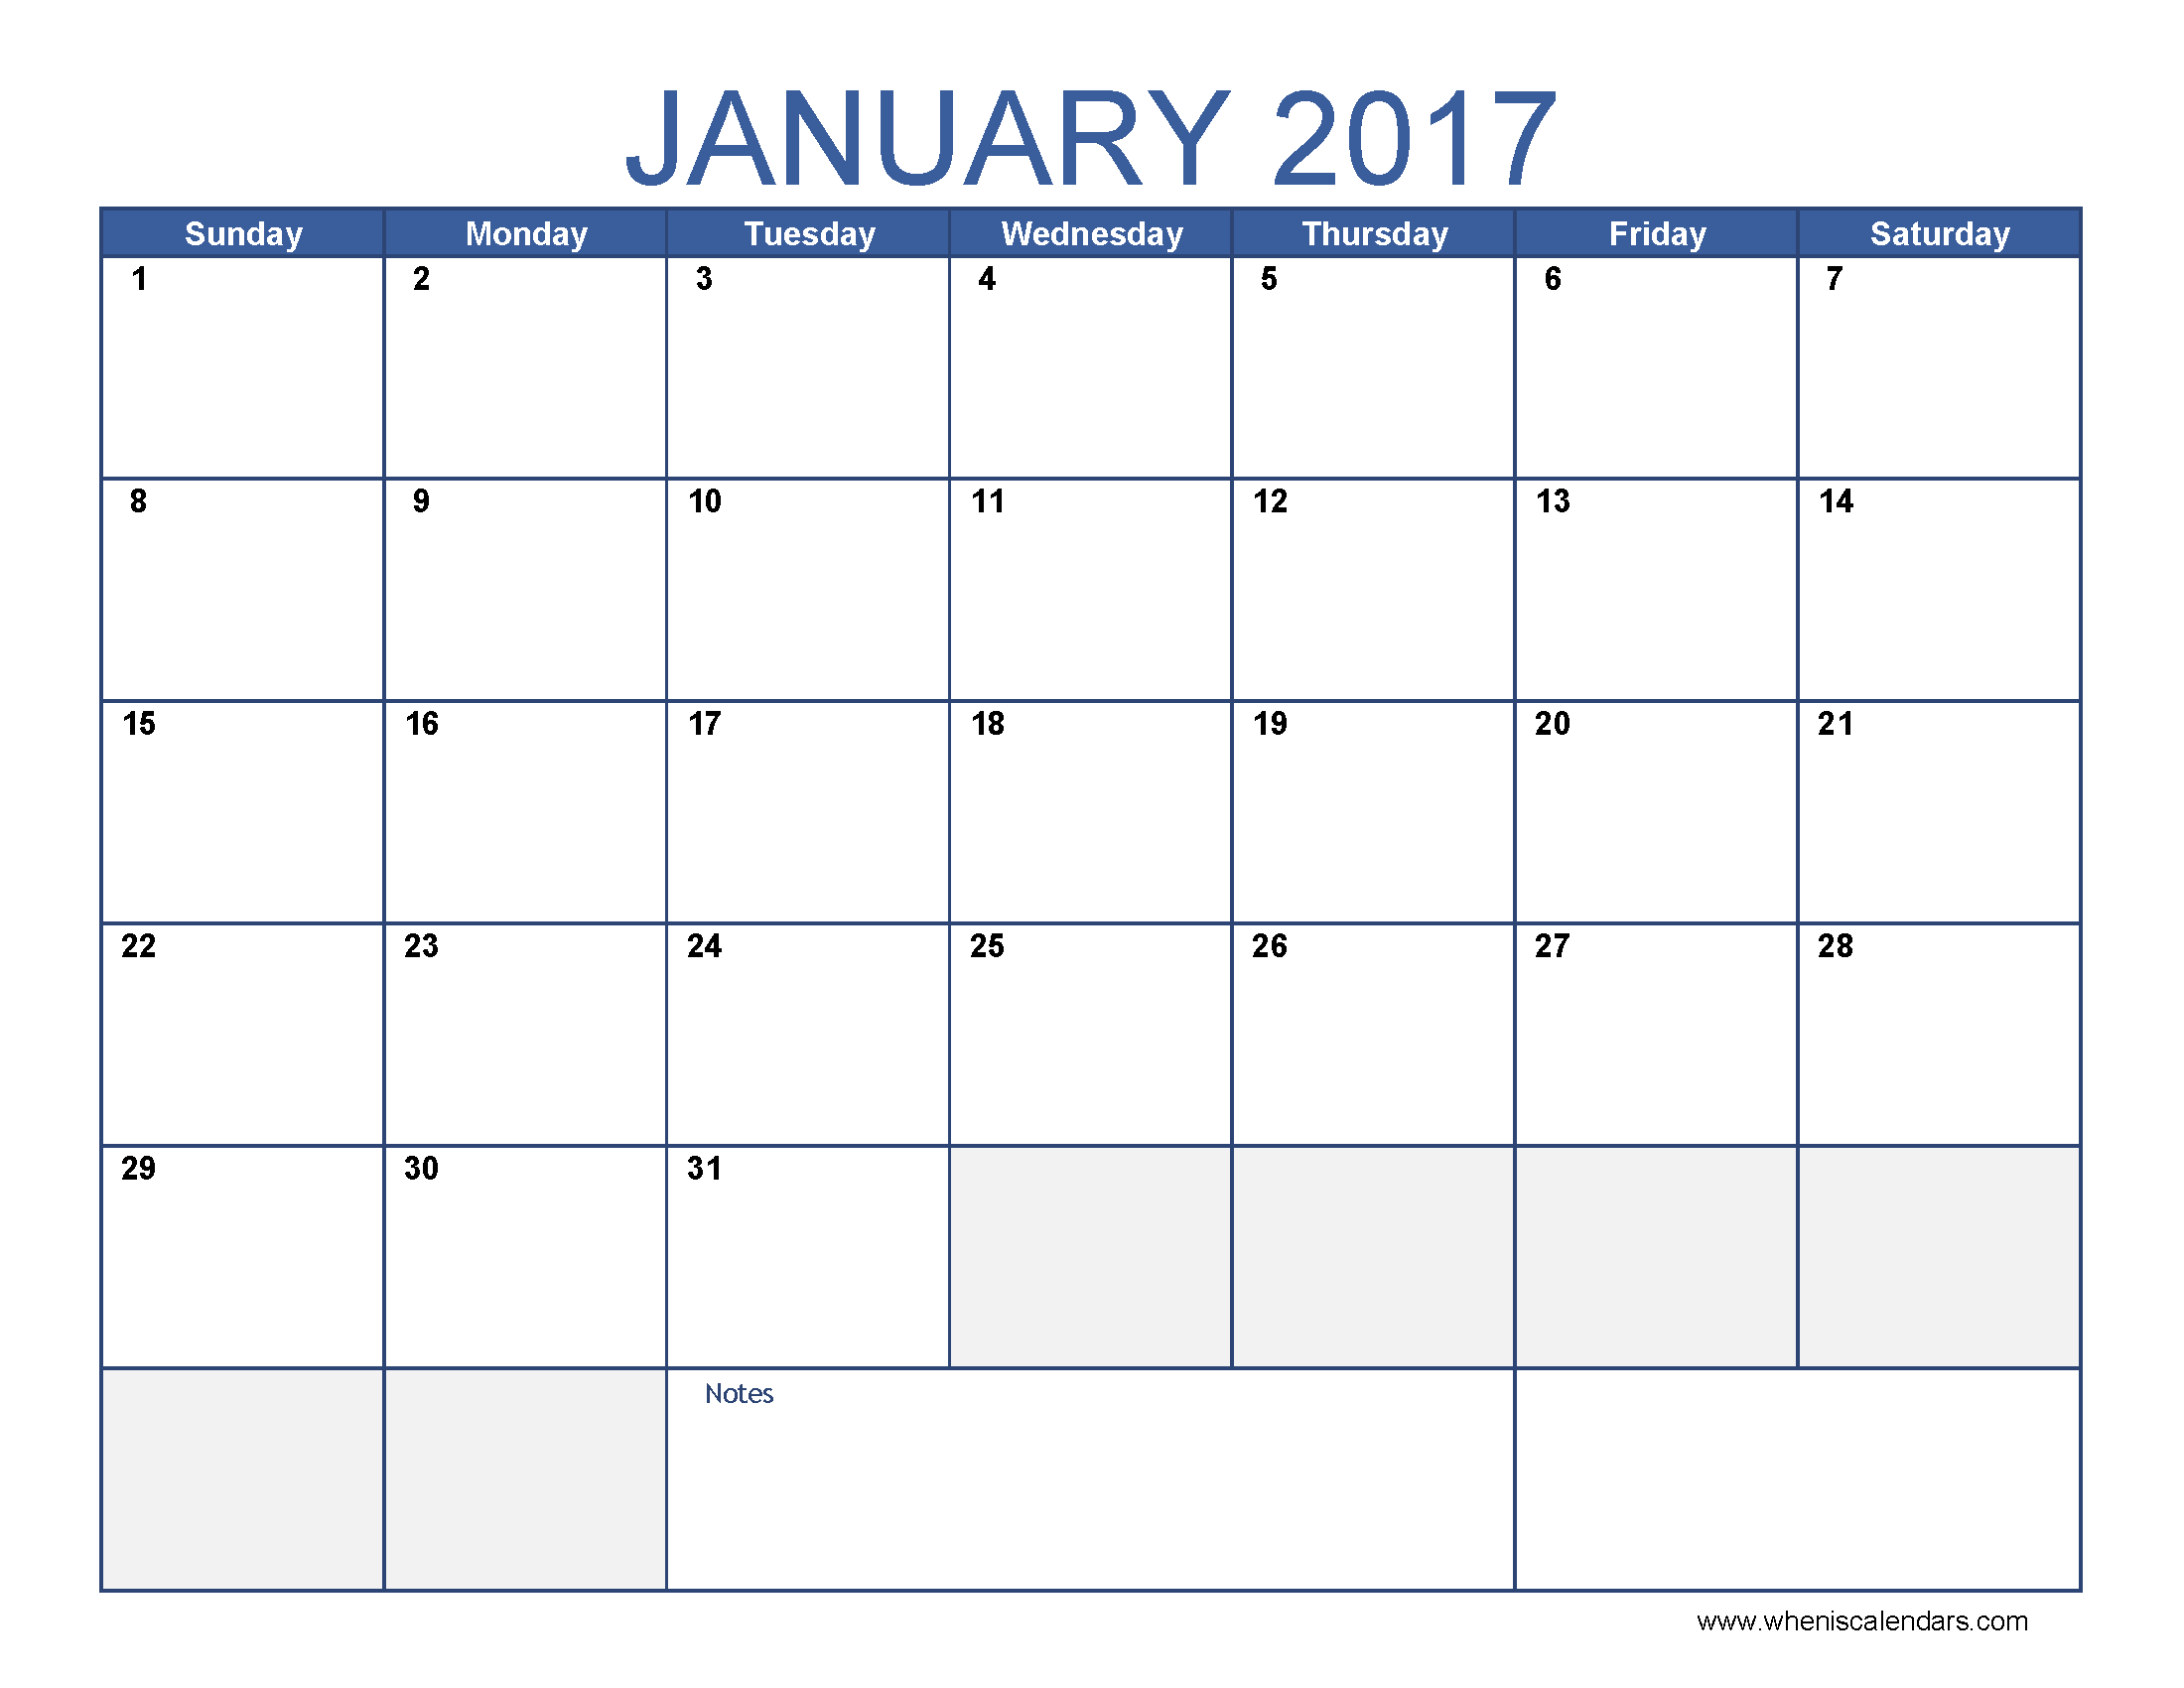 January  Calendar Printable  When Is Calendar  BobS Appts